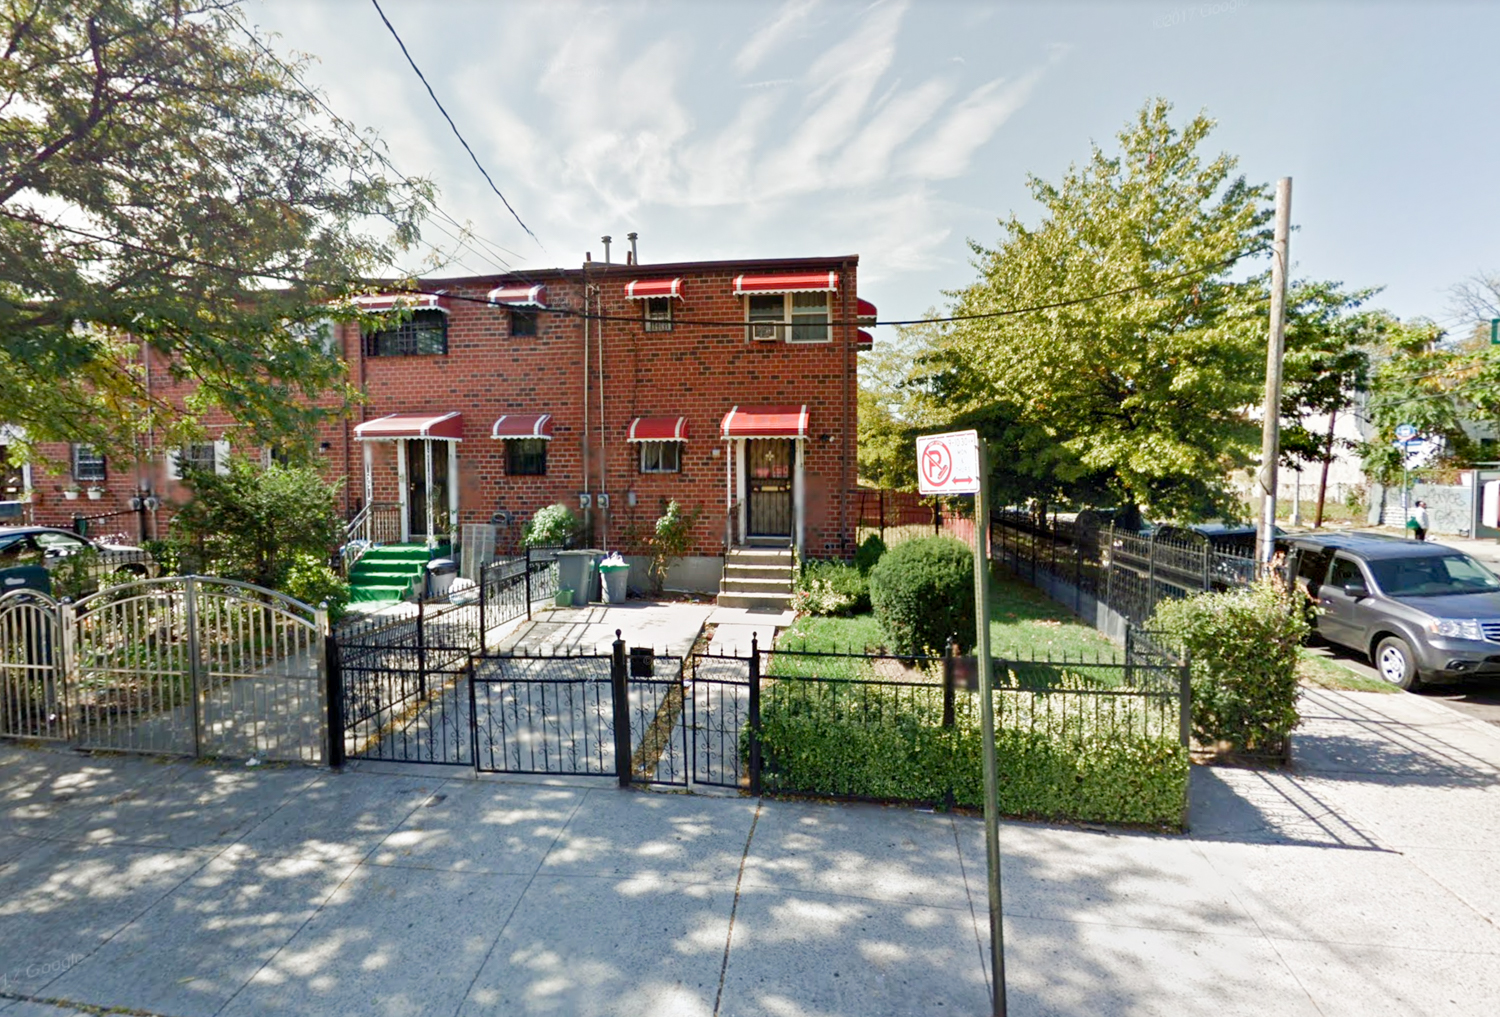 372 Bradford Street, via Google Maps